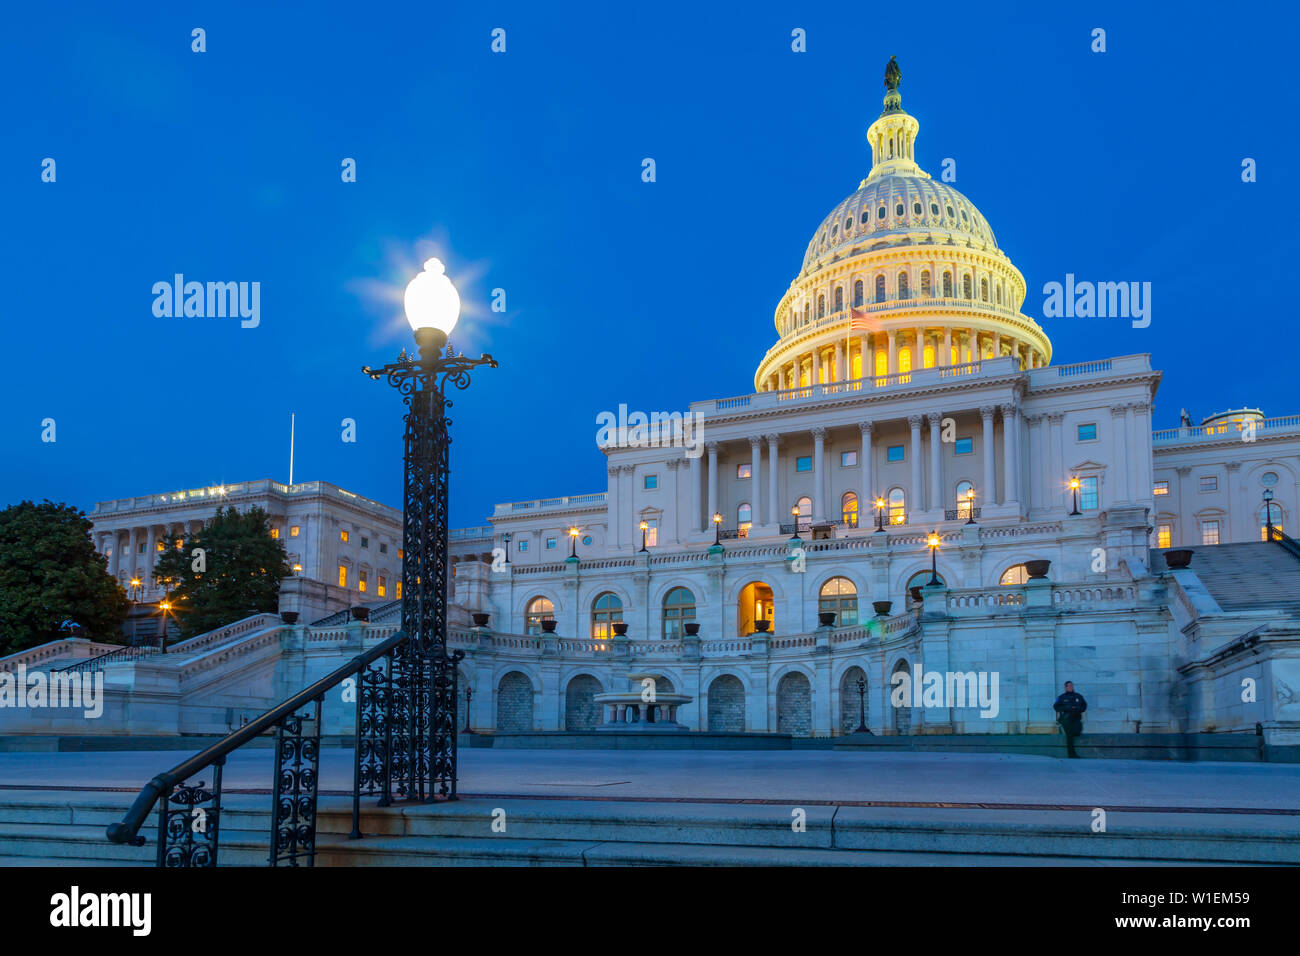 View of the United States Capitol Building at dusk, Washington D.C., United States of America, North America Stock Photo